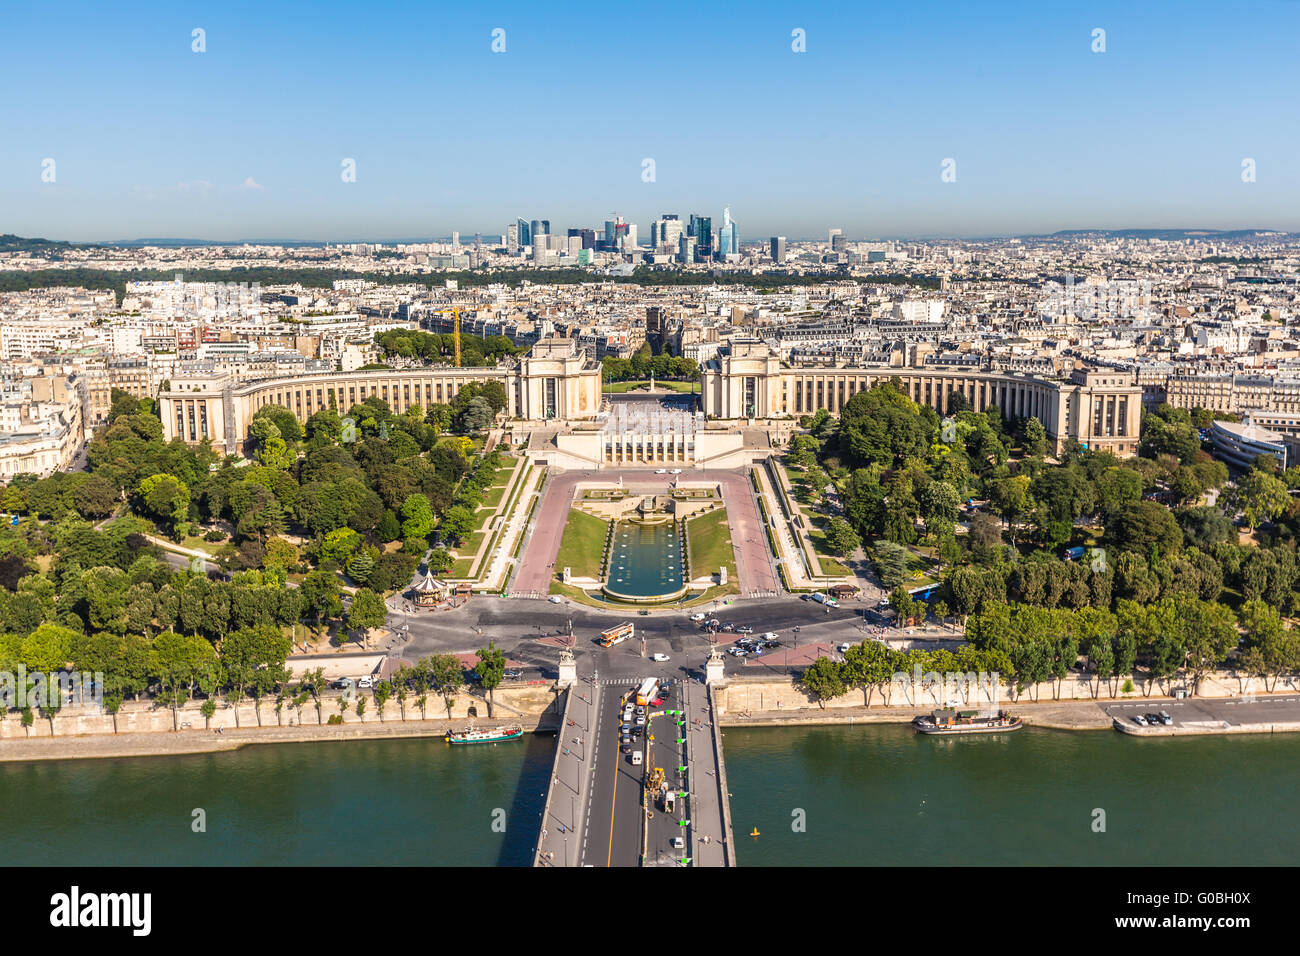 Top view to the Trocadero garden from Eiffel Tower in Paris, France Stock Photo